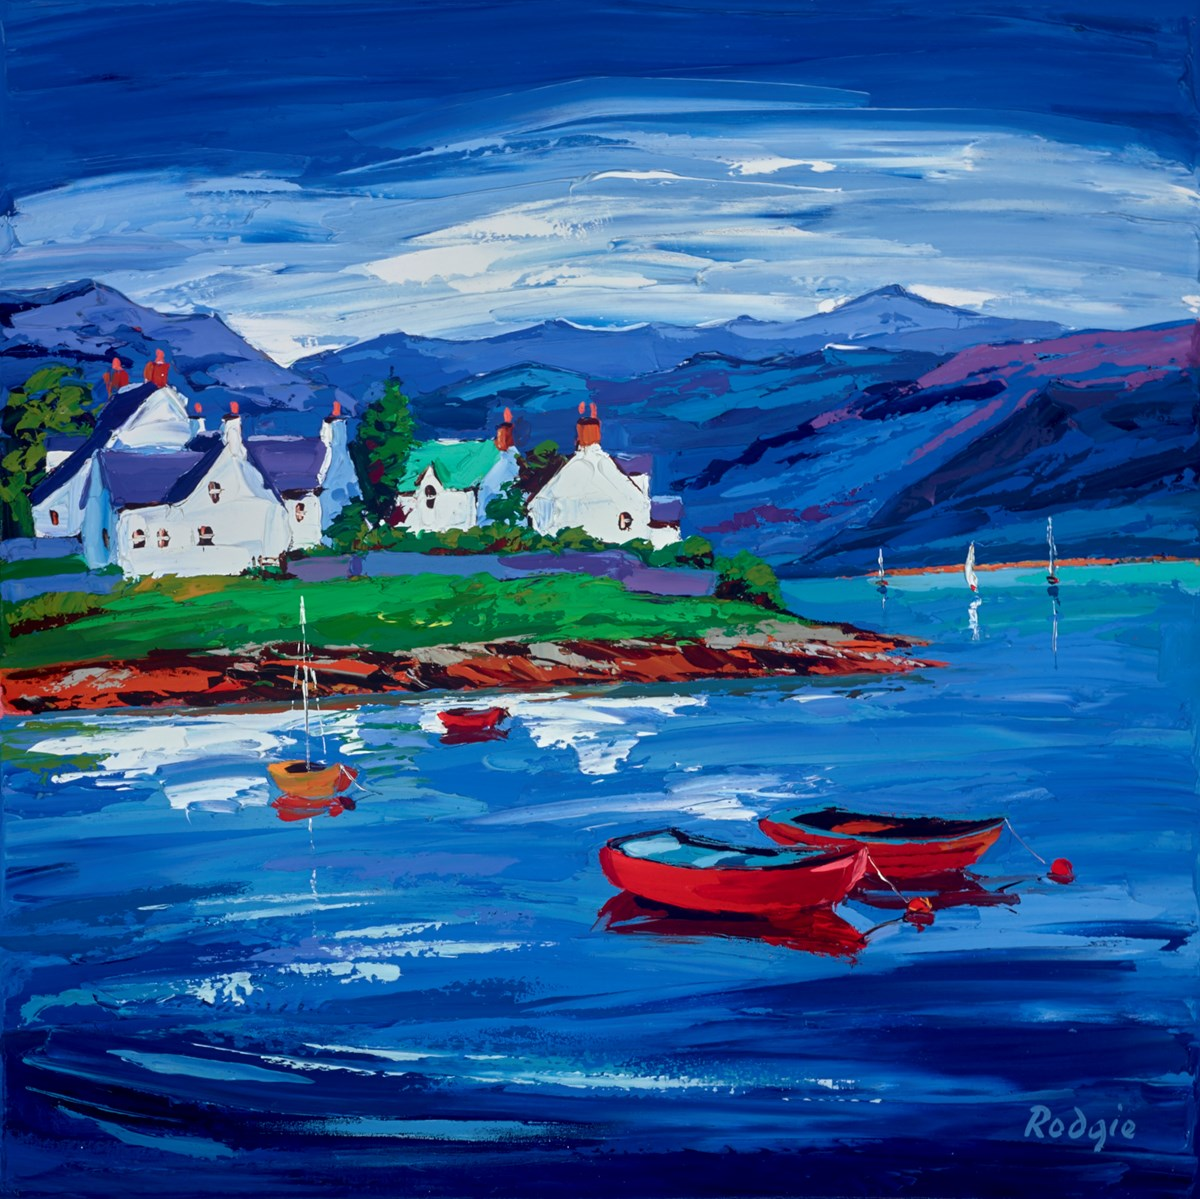 Evening Calm II by lynn rodgie -  sized 24x24 inches. Available from Whitewall Galleries